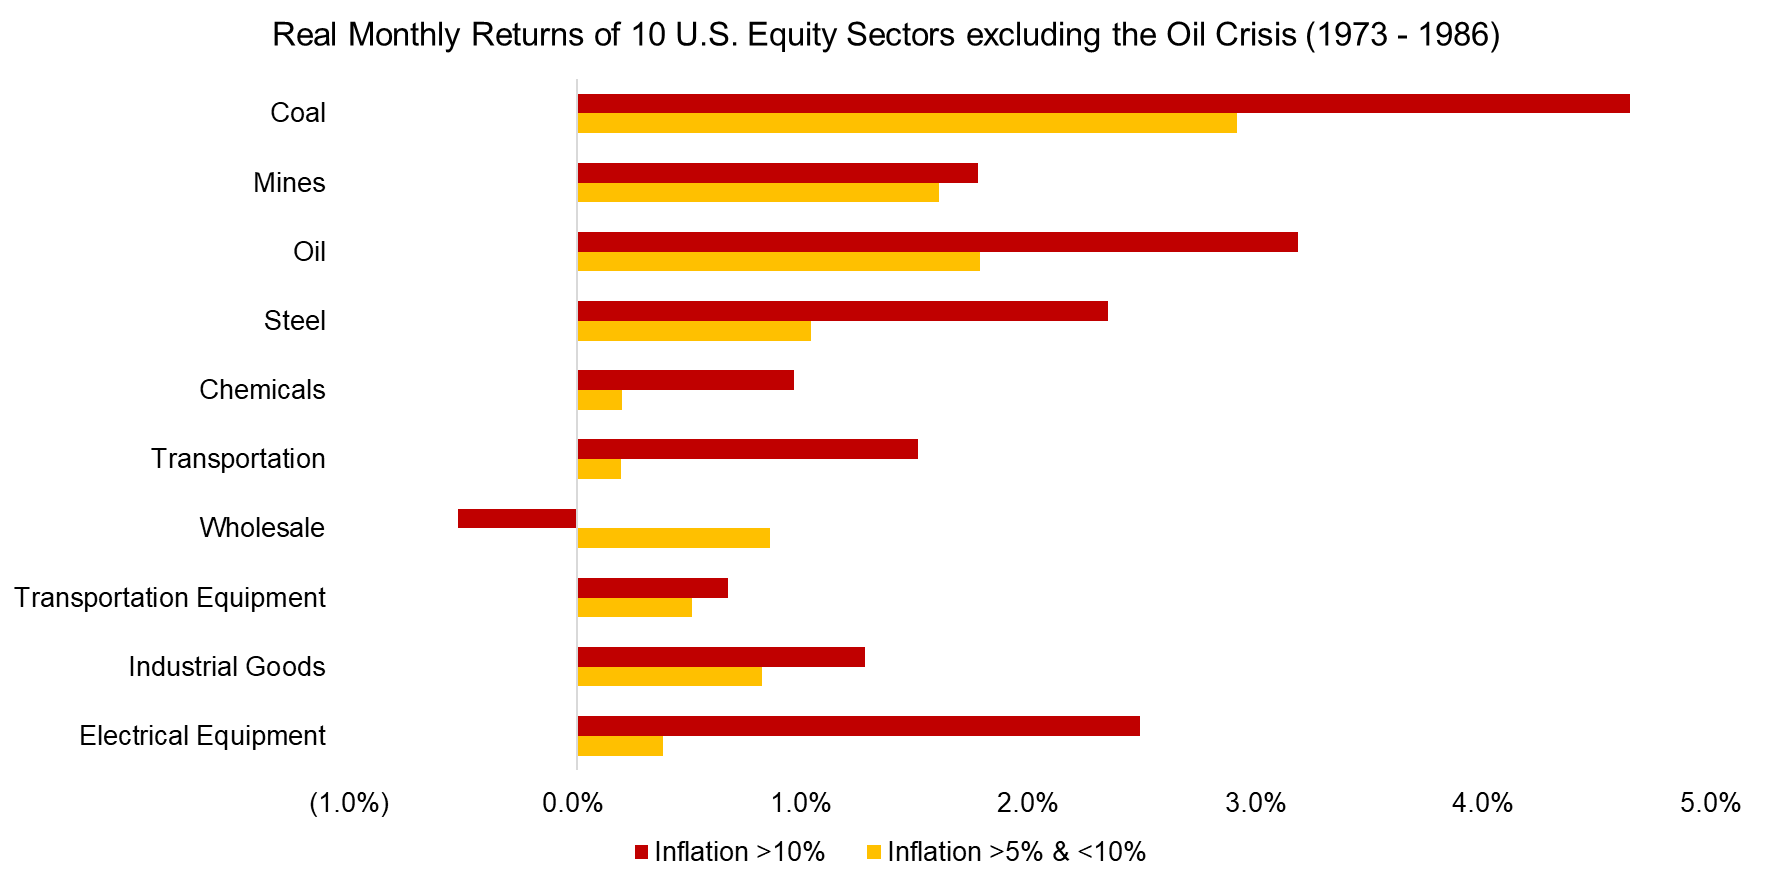 Real Monthly Returns of 10 U.S. Equity Sectors excluding the Oil Crisis (1973 - 1986)